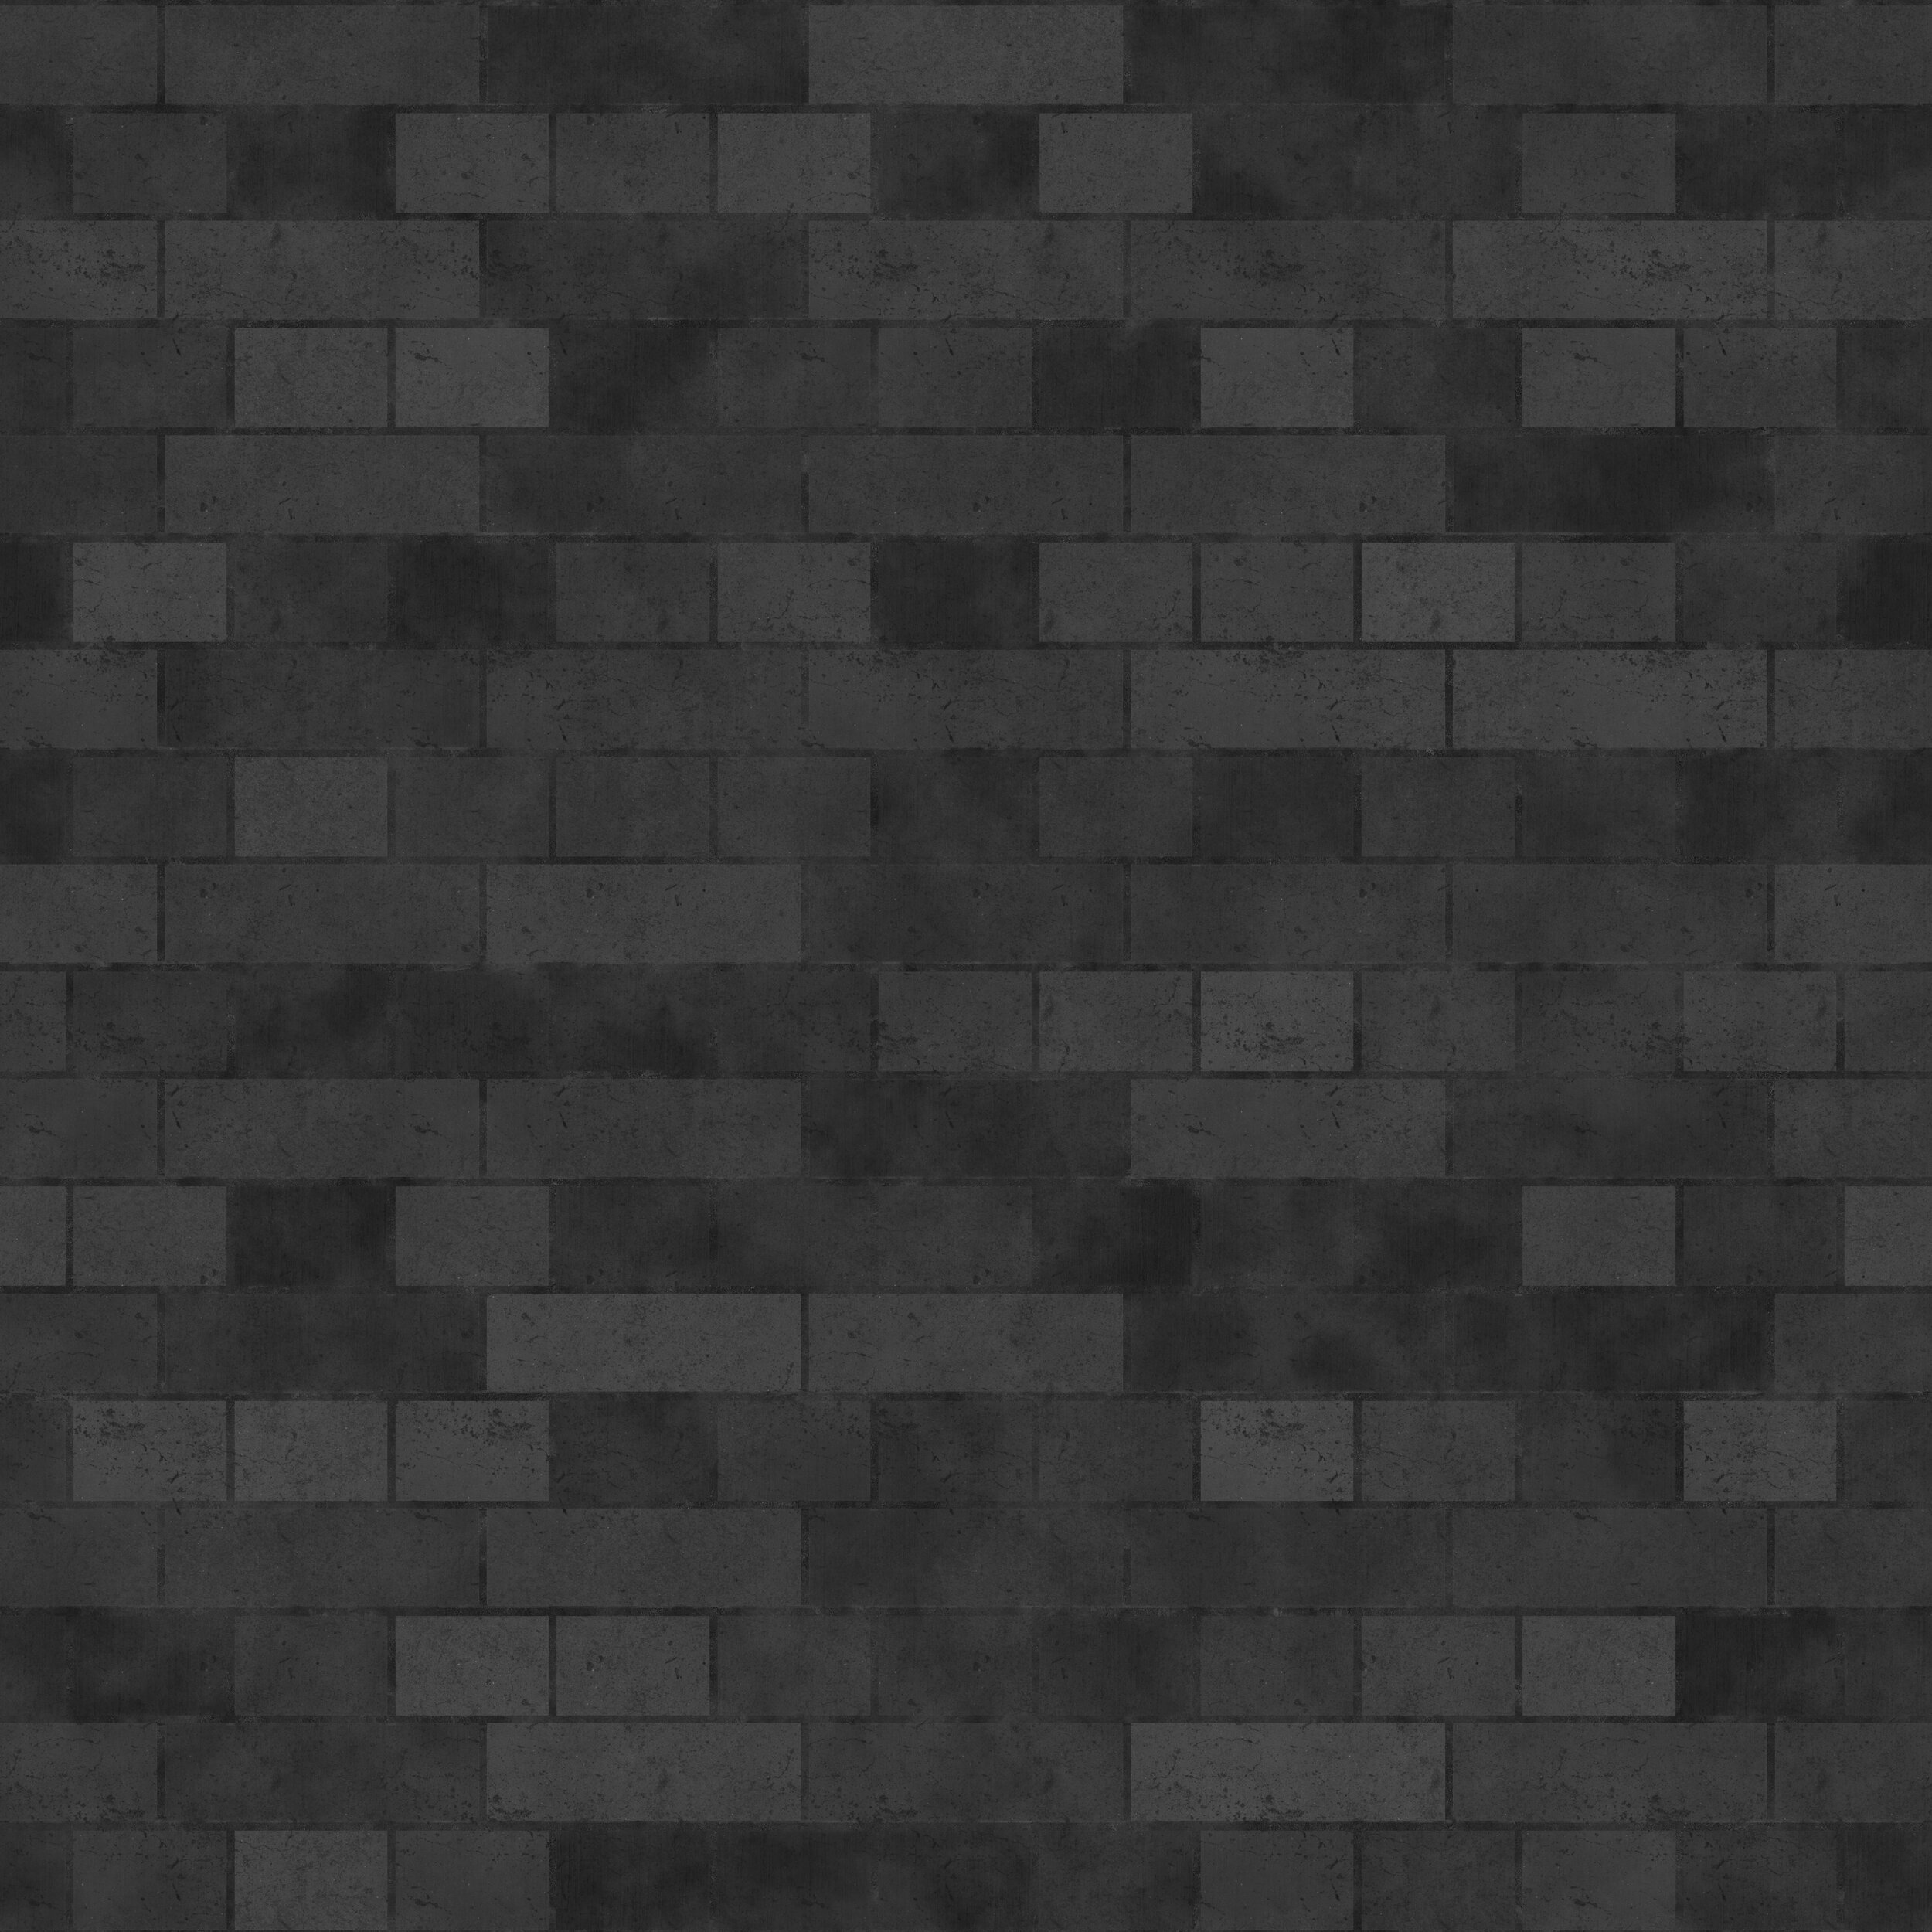 Bricks_AI_01C_White_GLOSS.jpg